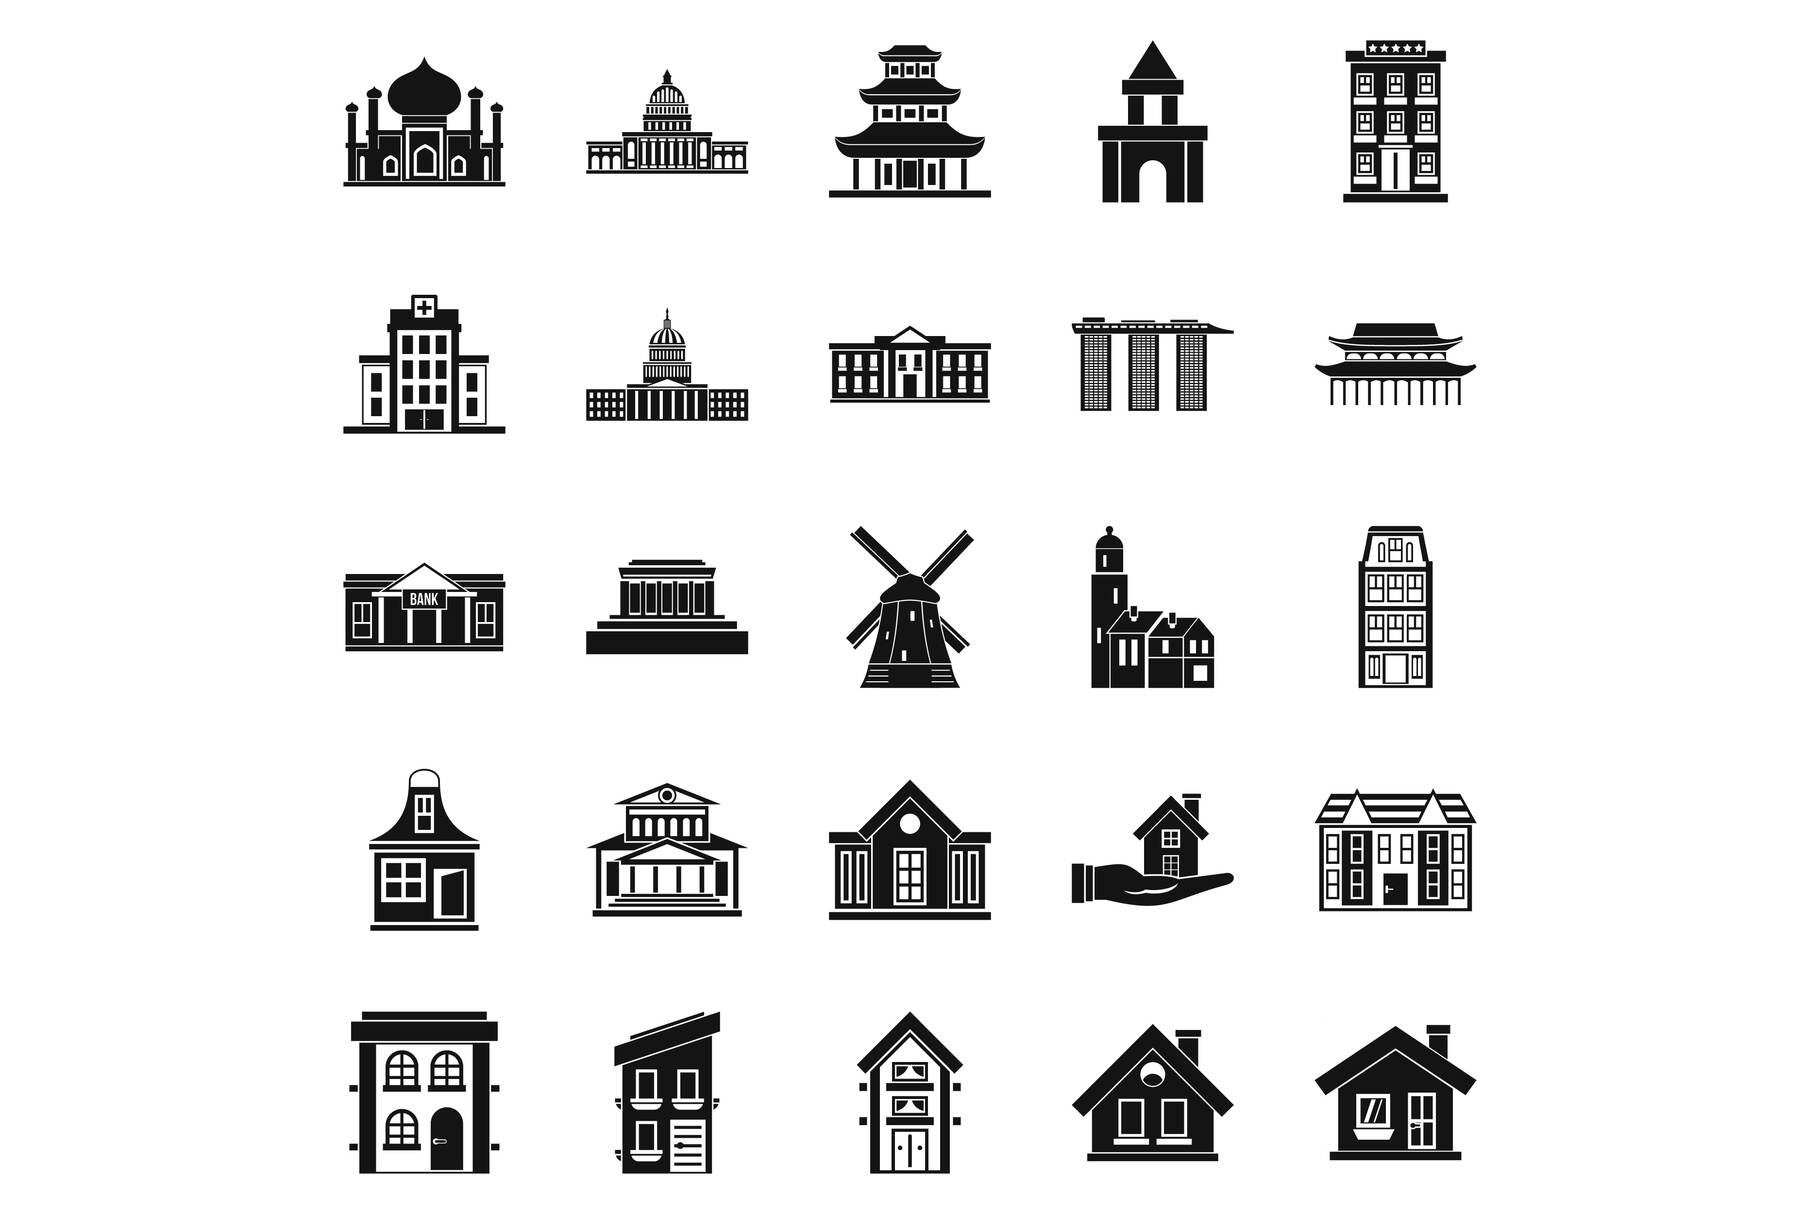 Building site icons set, simple style example image 1